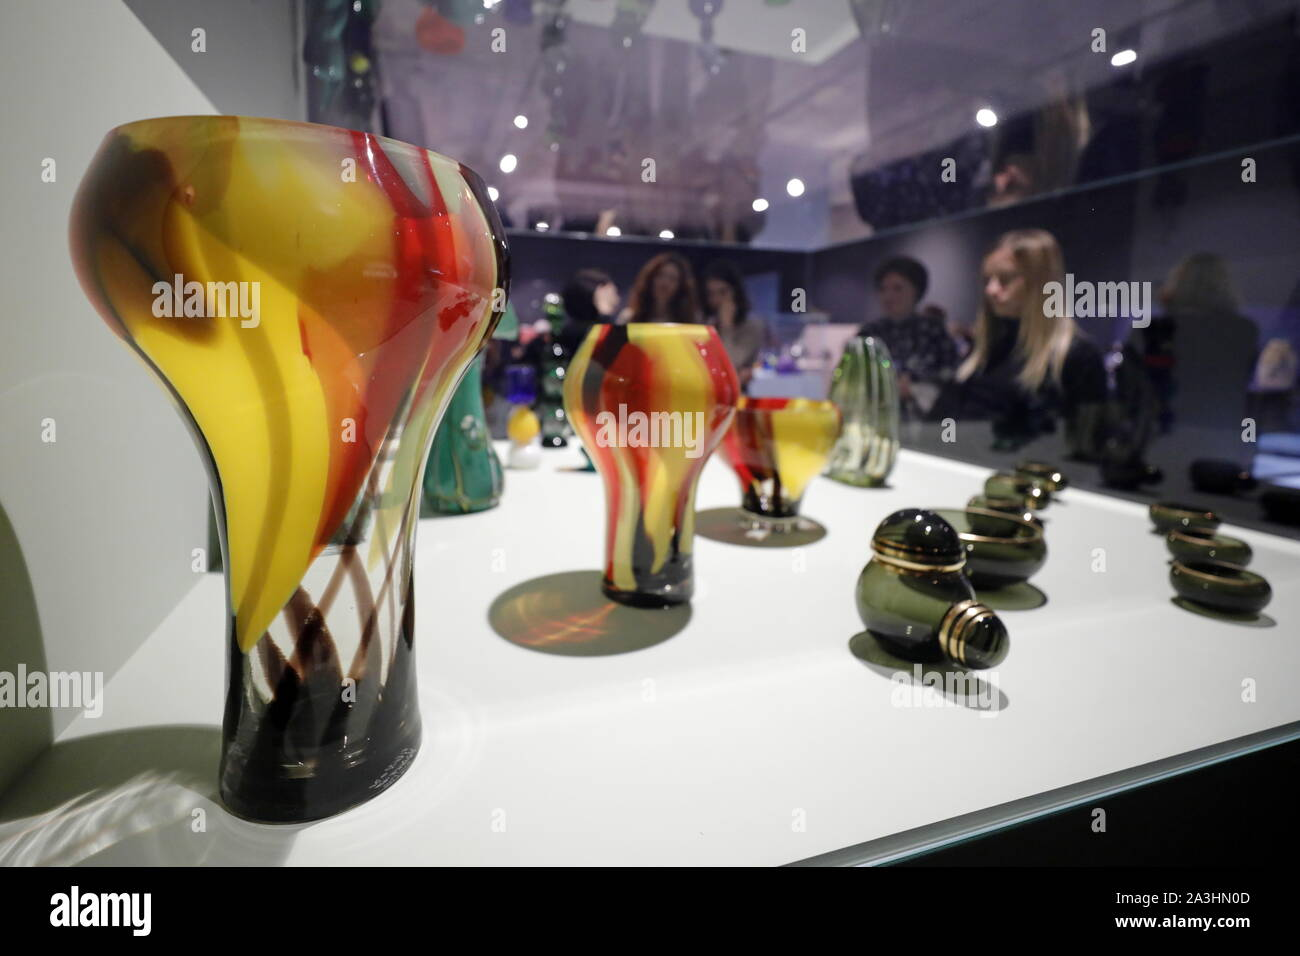 Moscow Russia 08th Oct 2019 Moscow Russia October 8 2019 The Na Prosvet Exhibition Of Soviet And Post Soviet Glass Art At The All Russia Museum Of Decorative Applied And Folk Art Mikhail